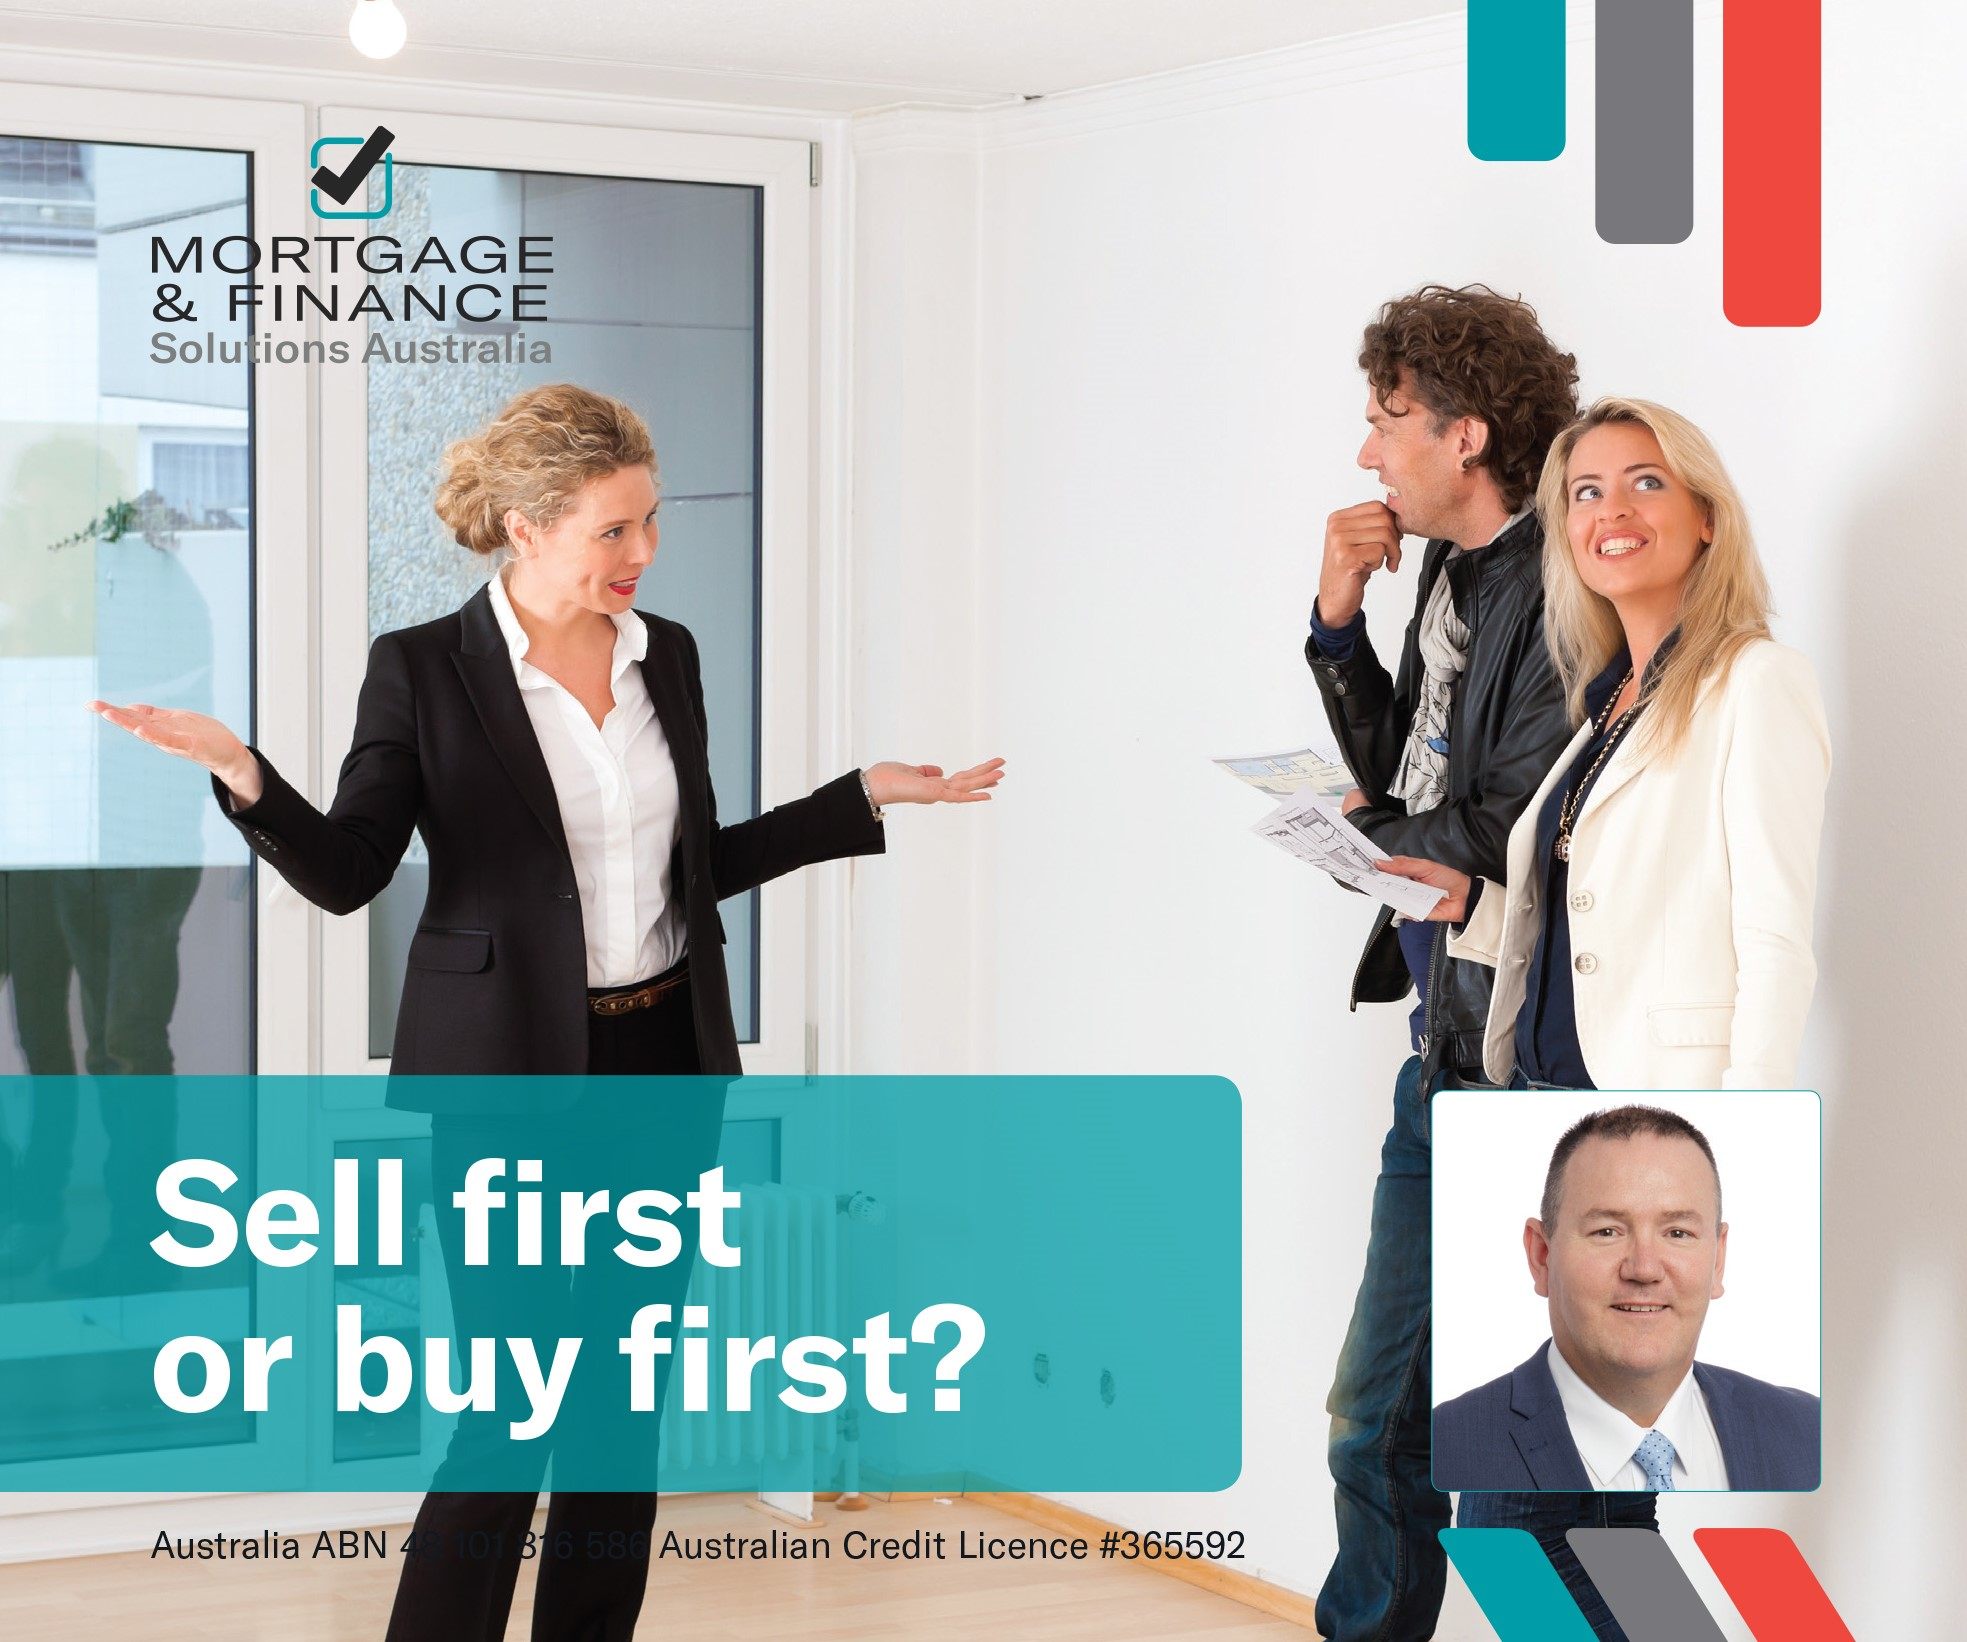 Sell first or Buy first?